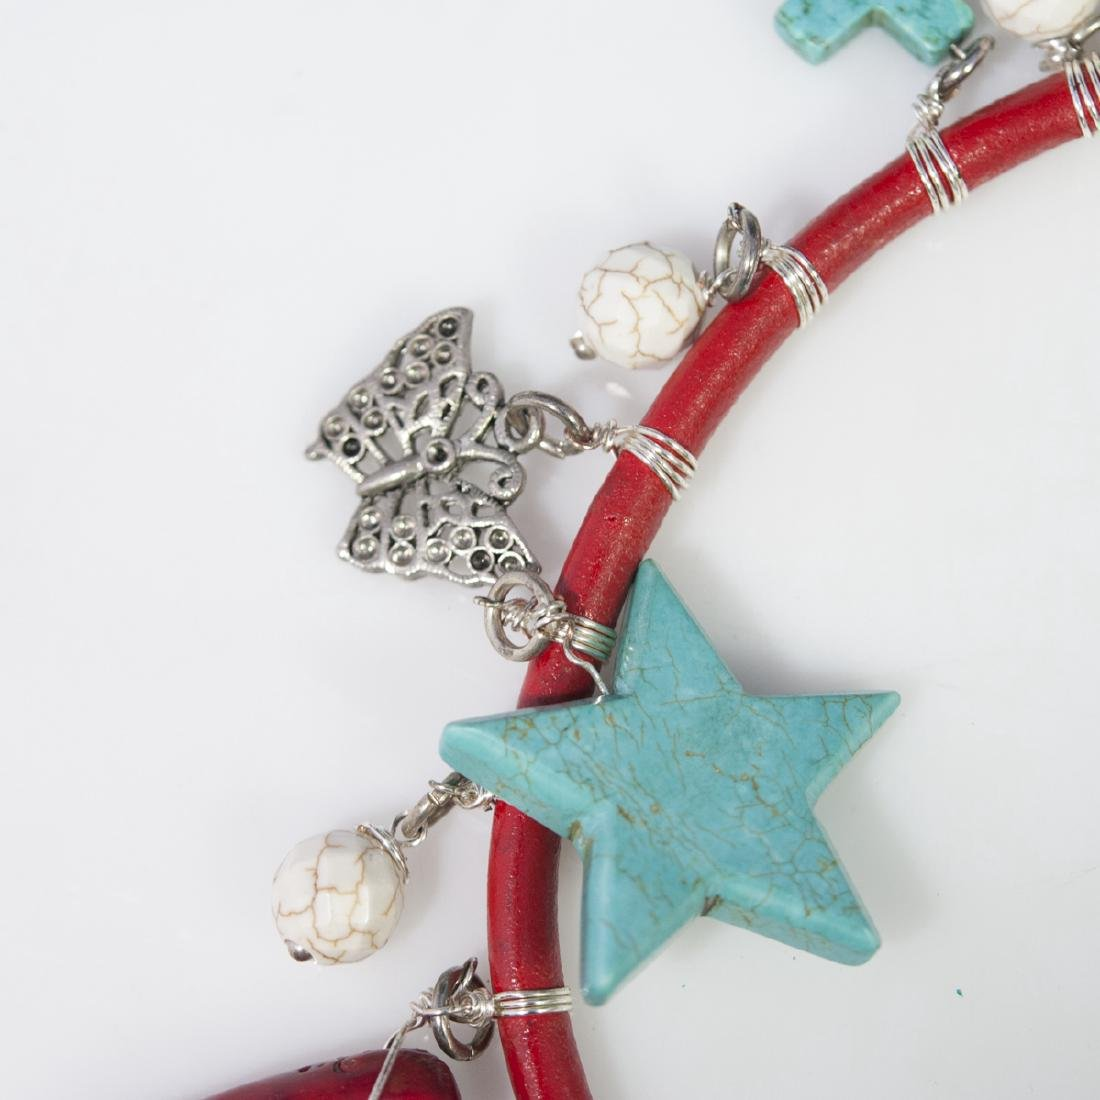 Leather Turquoise Choker Necklace - 4